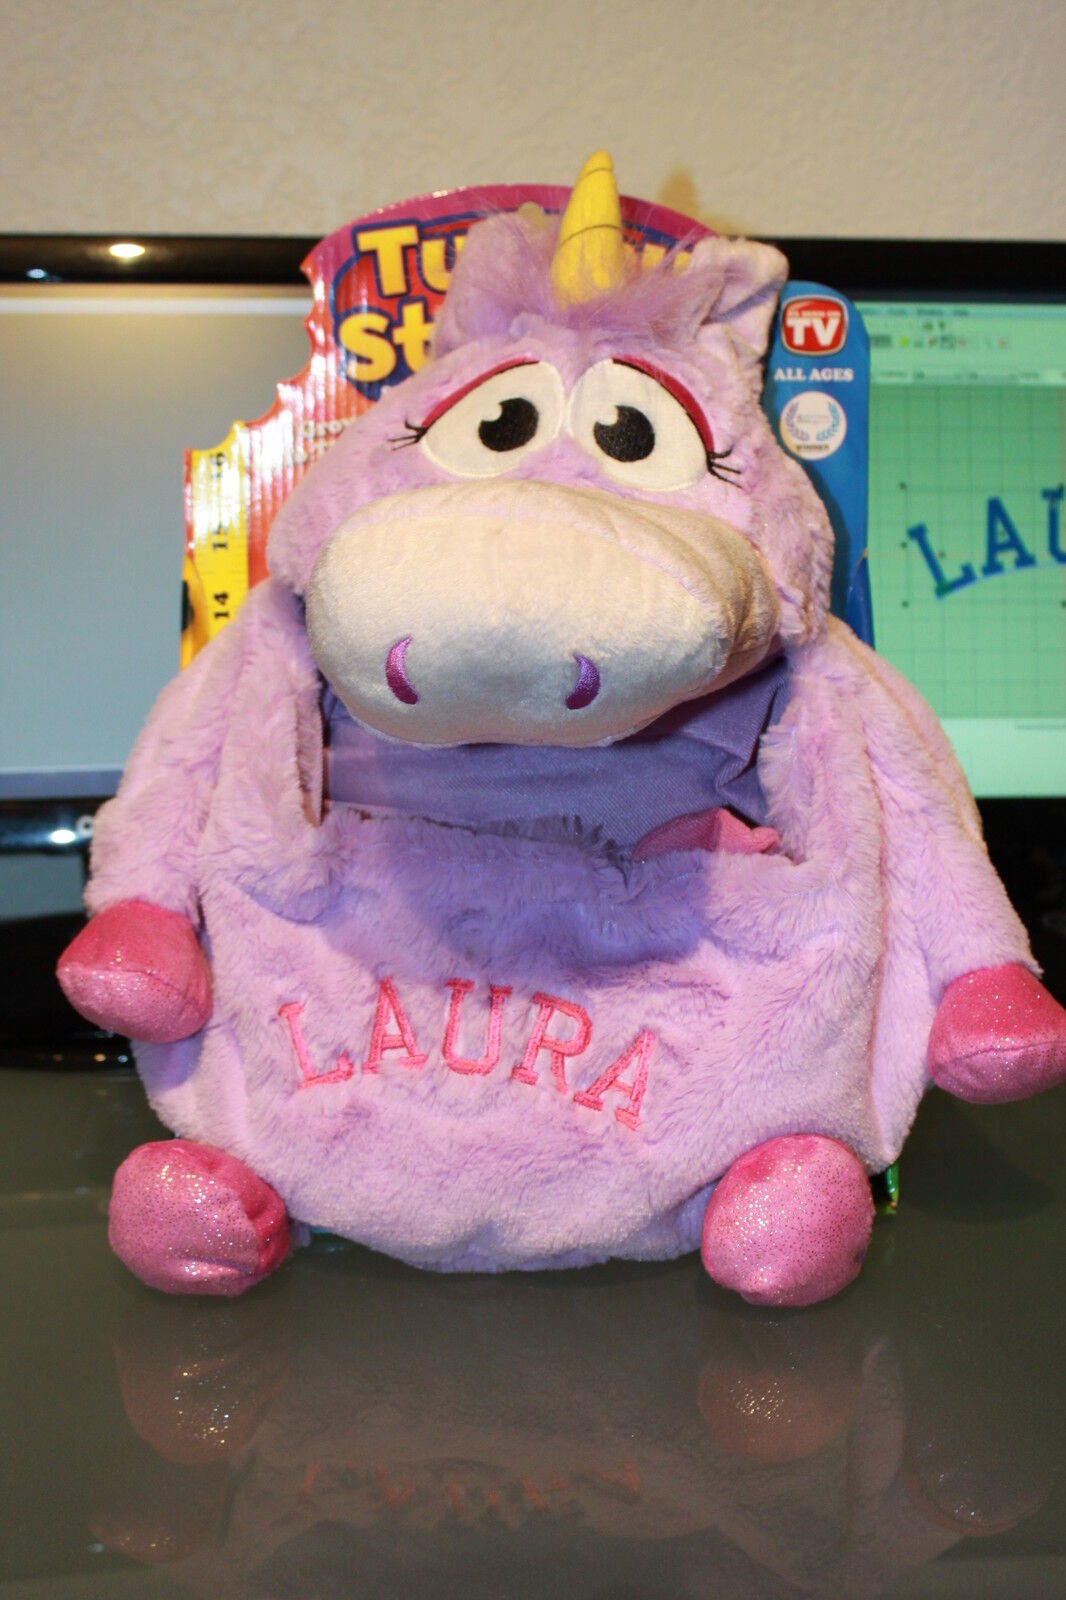 Tummy Stuffer - violaC UNICORN  PERSONALIZED As Seen On TV   New MUST SEE